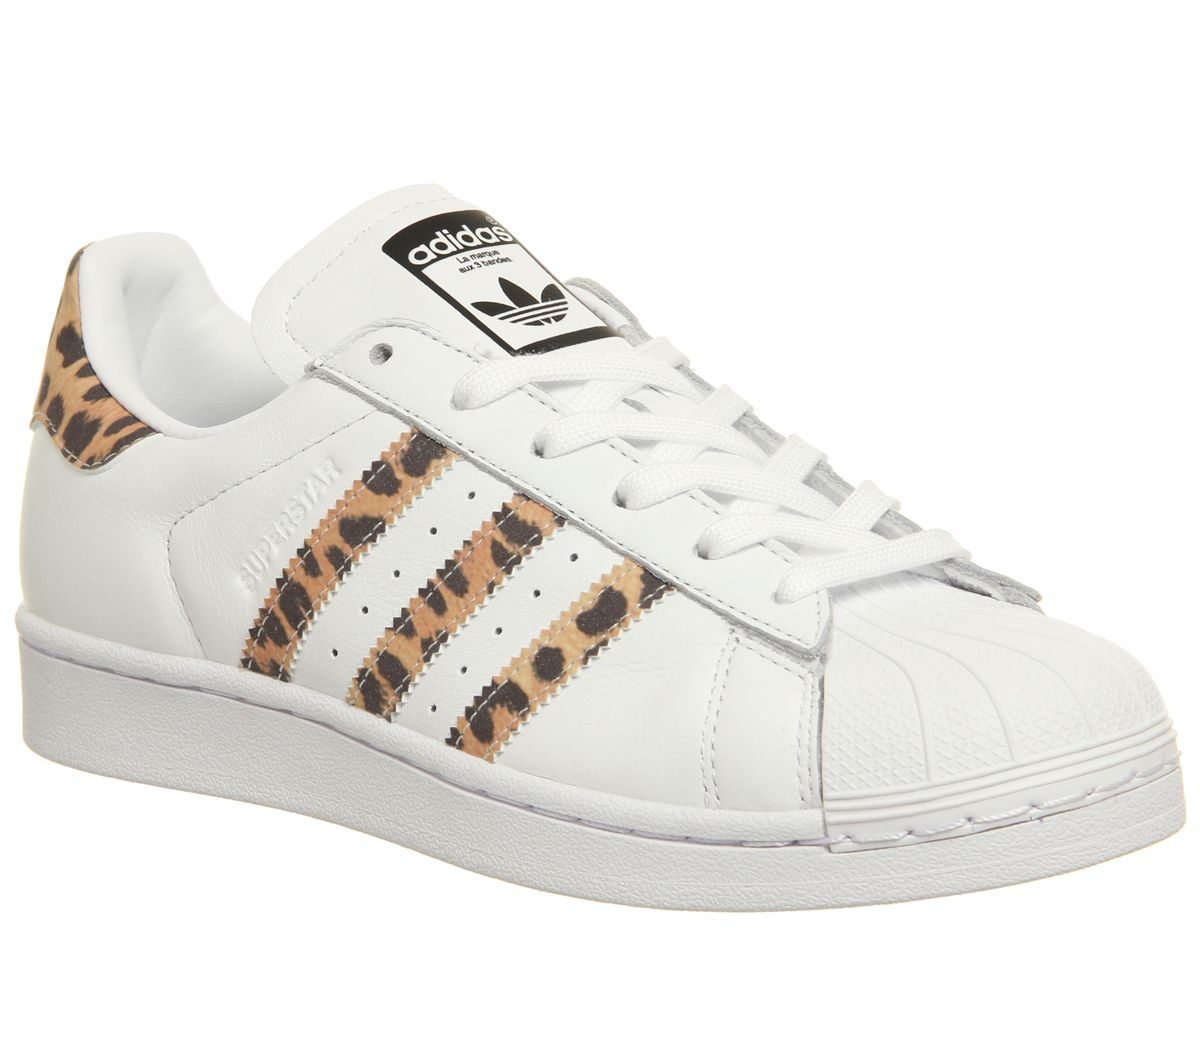 hot sale online 661c3 12e8c adidas Superstar 1 Trainers White Leopard Core Black F - Hers trainers